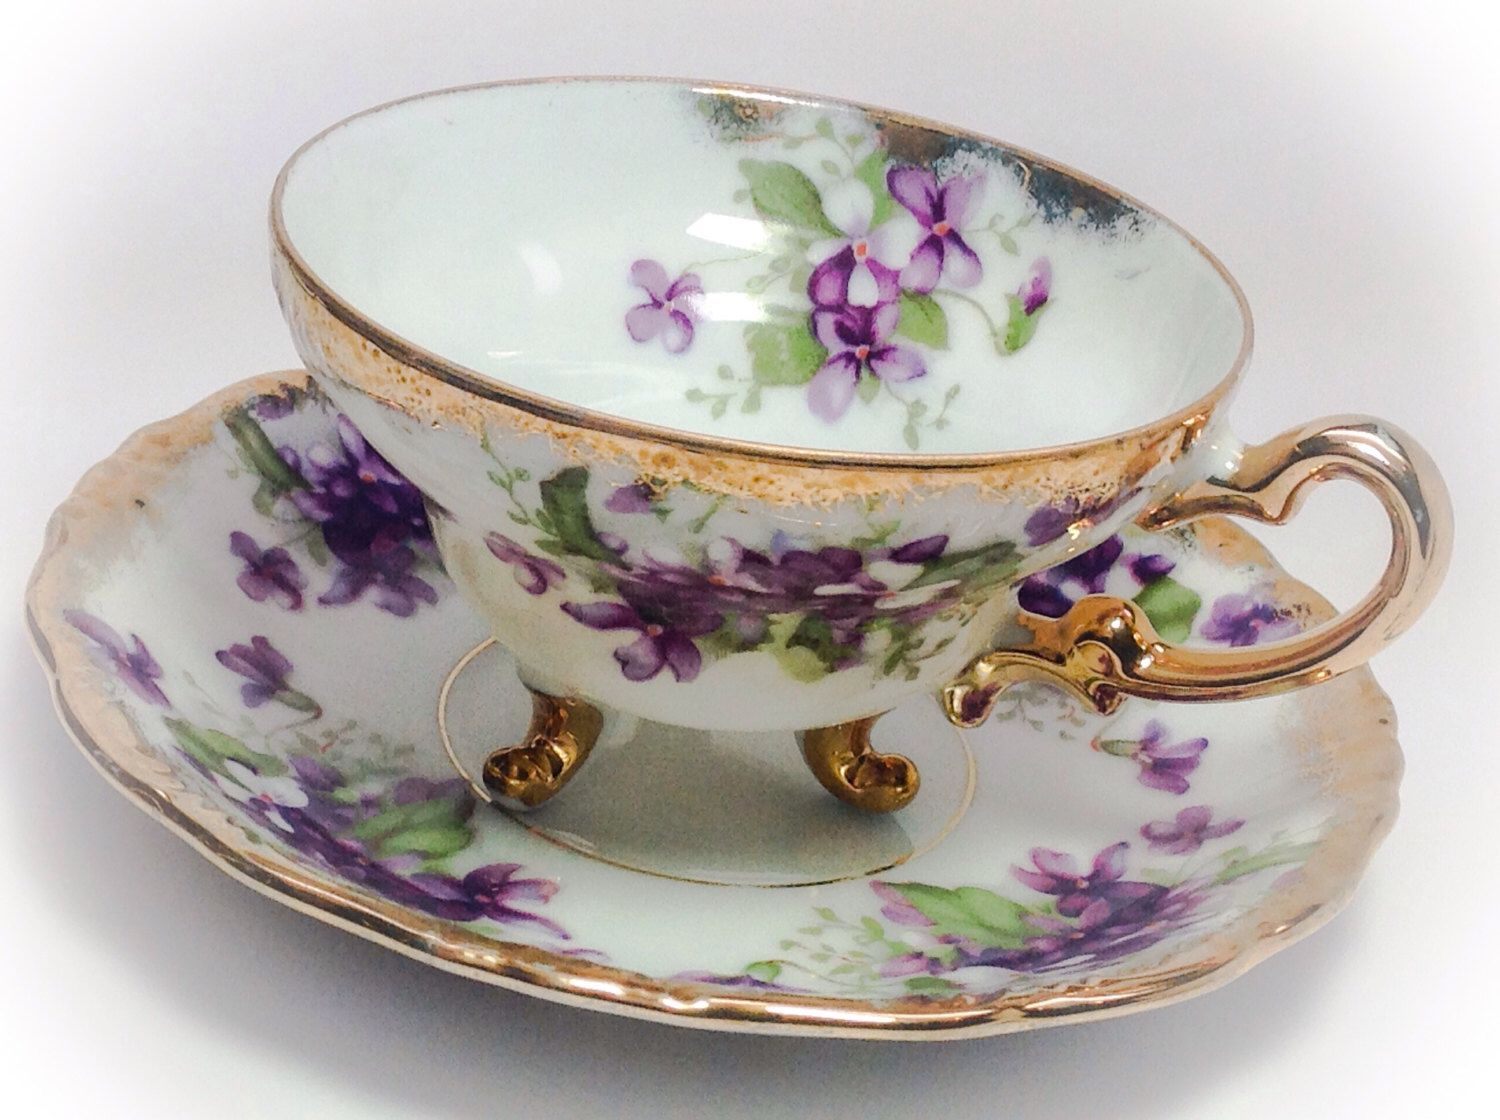 Royal albert bone china tea cup amp saucer winsome pattern ebay - Royal Sealy China Japan Tea Cup And Saucer With Purple Violets Royal Albertvintage Teabone